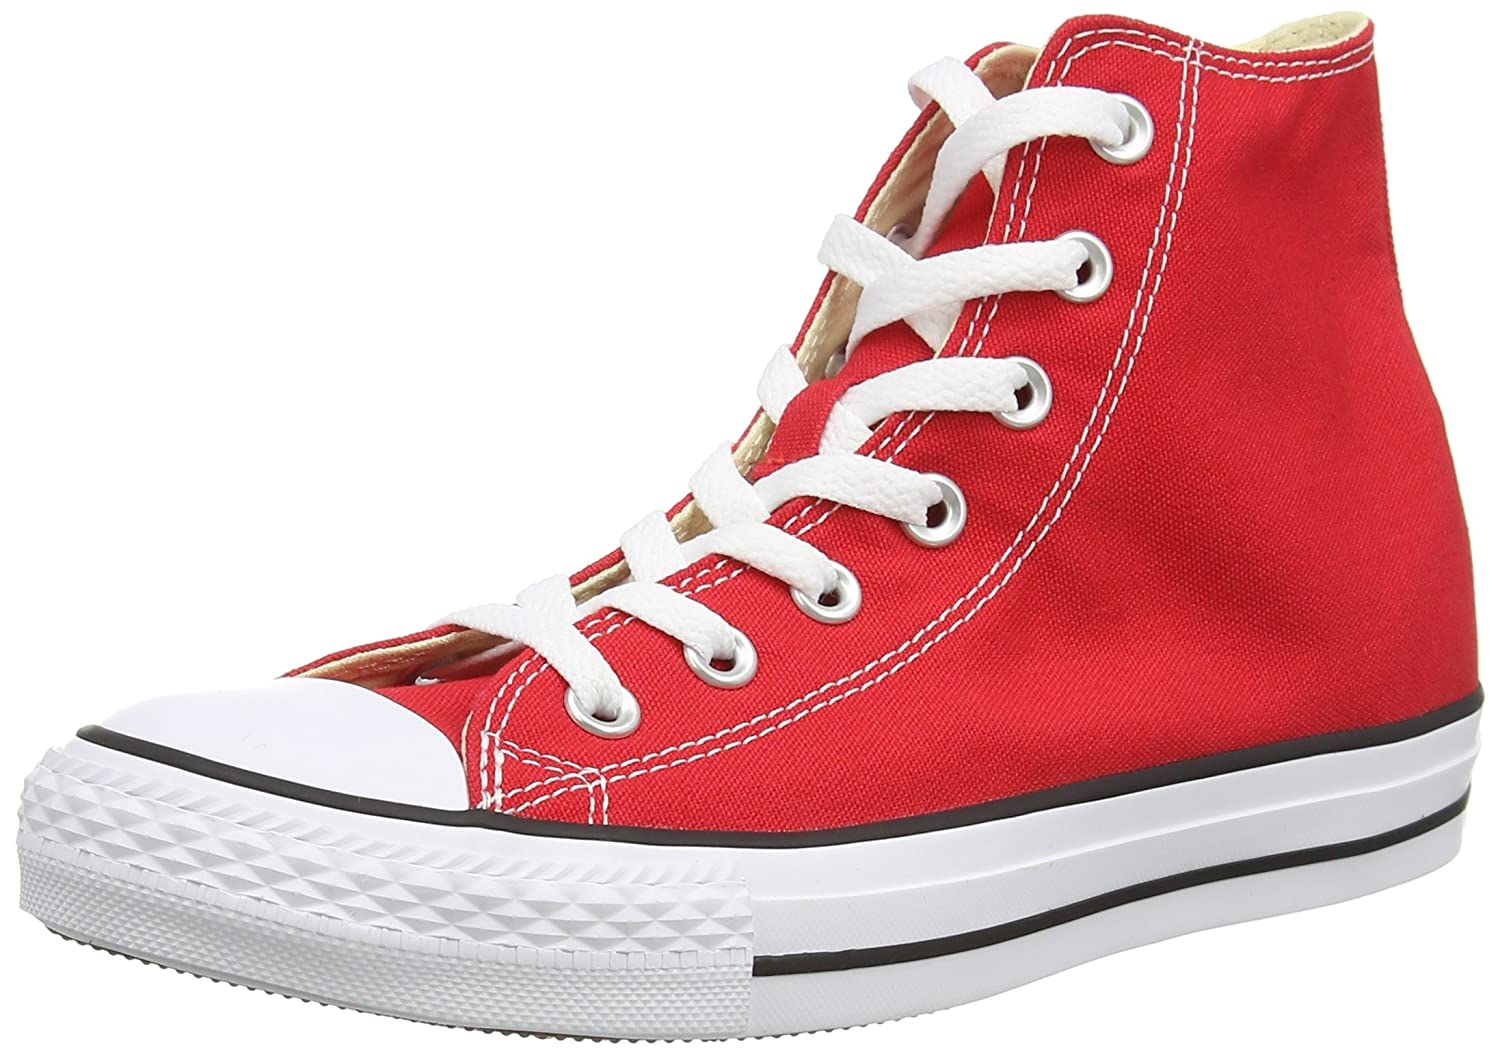 Converse Unisex Chuck Taylor All-Star High-Top Casual Sneakers in Classic Style and Color and Durable Canvas Uppers B000N3X3G2 6 B(M) US Women / 4 D(M) US Men|Red